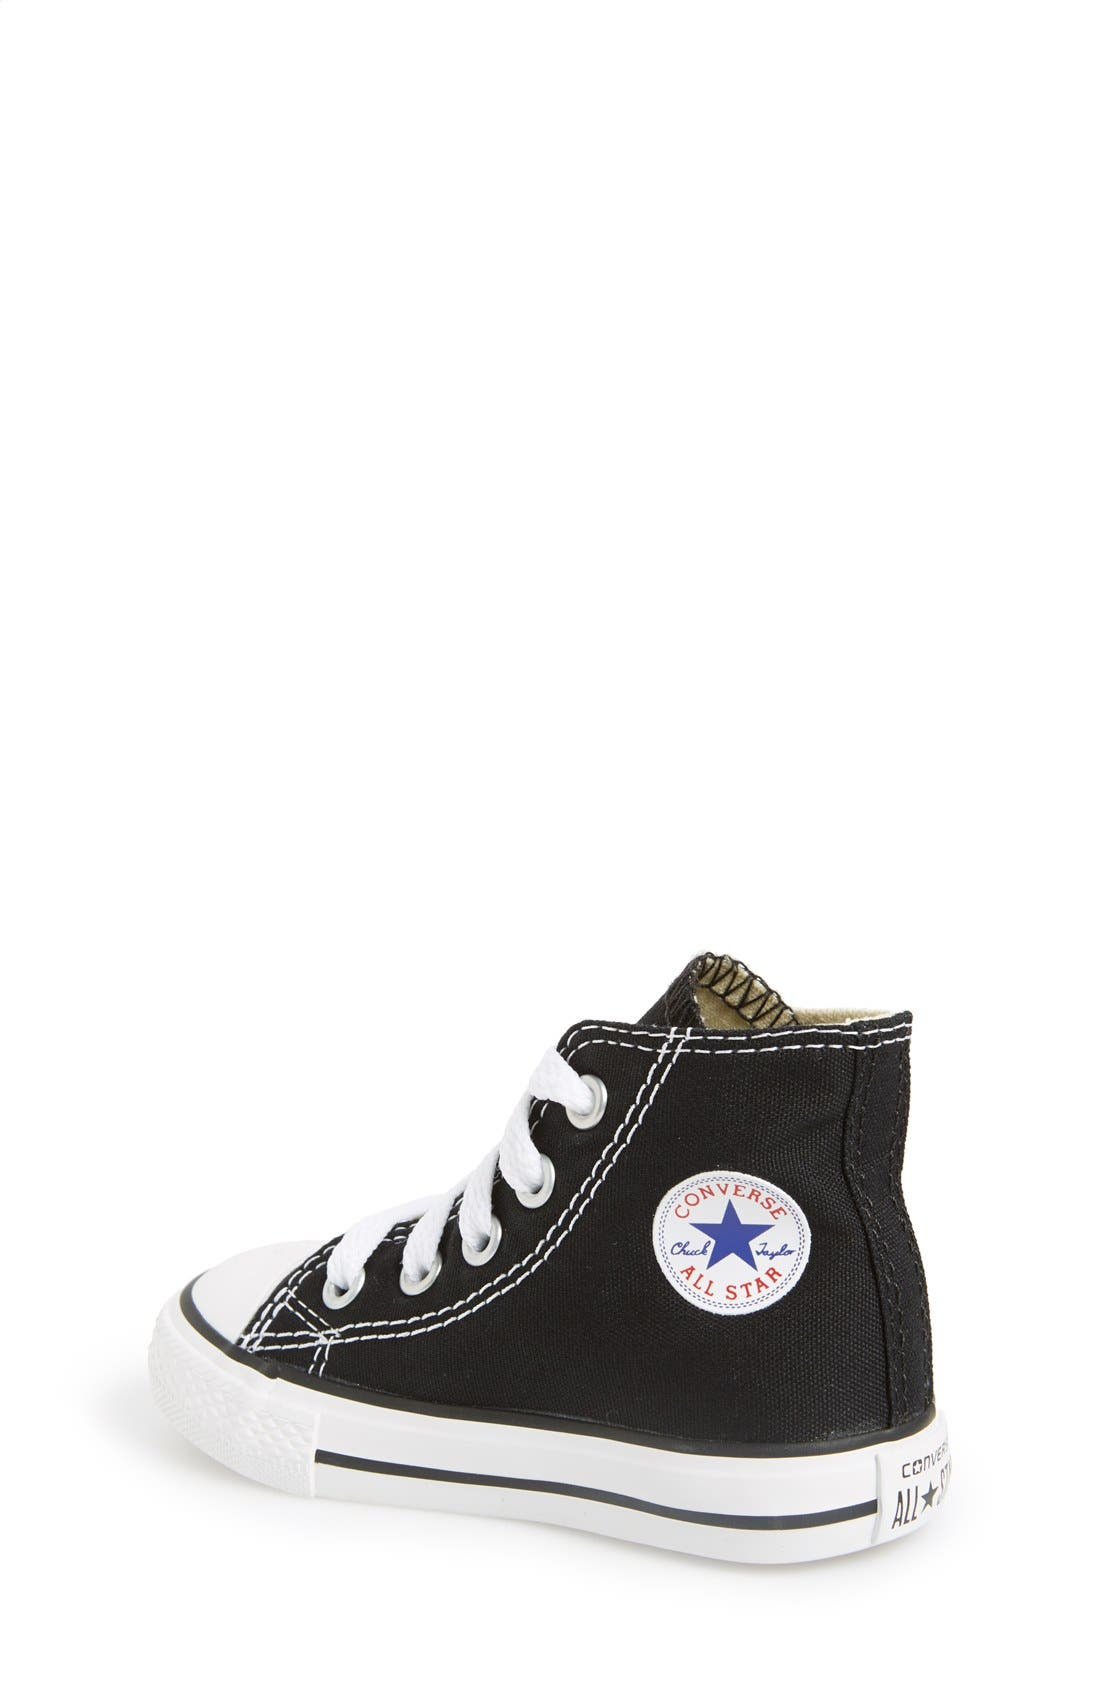 CONVERSE, All Star<sup>®</sup> High Top Sneaker, Alternate thumbnail 2, color, BLACK